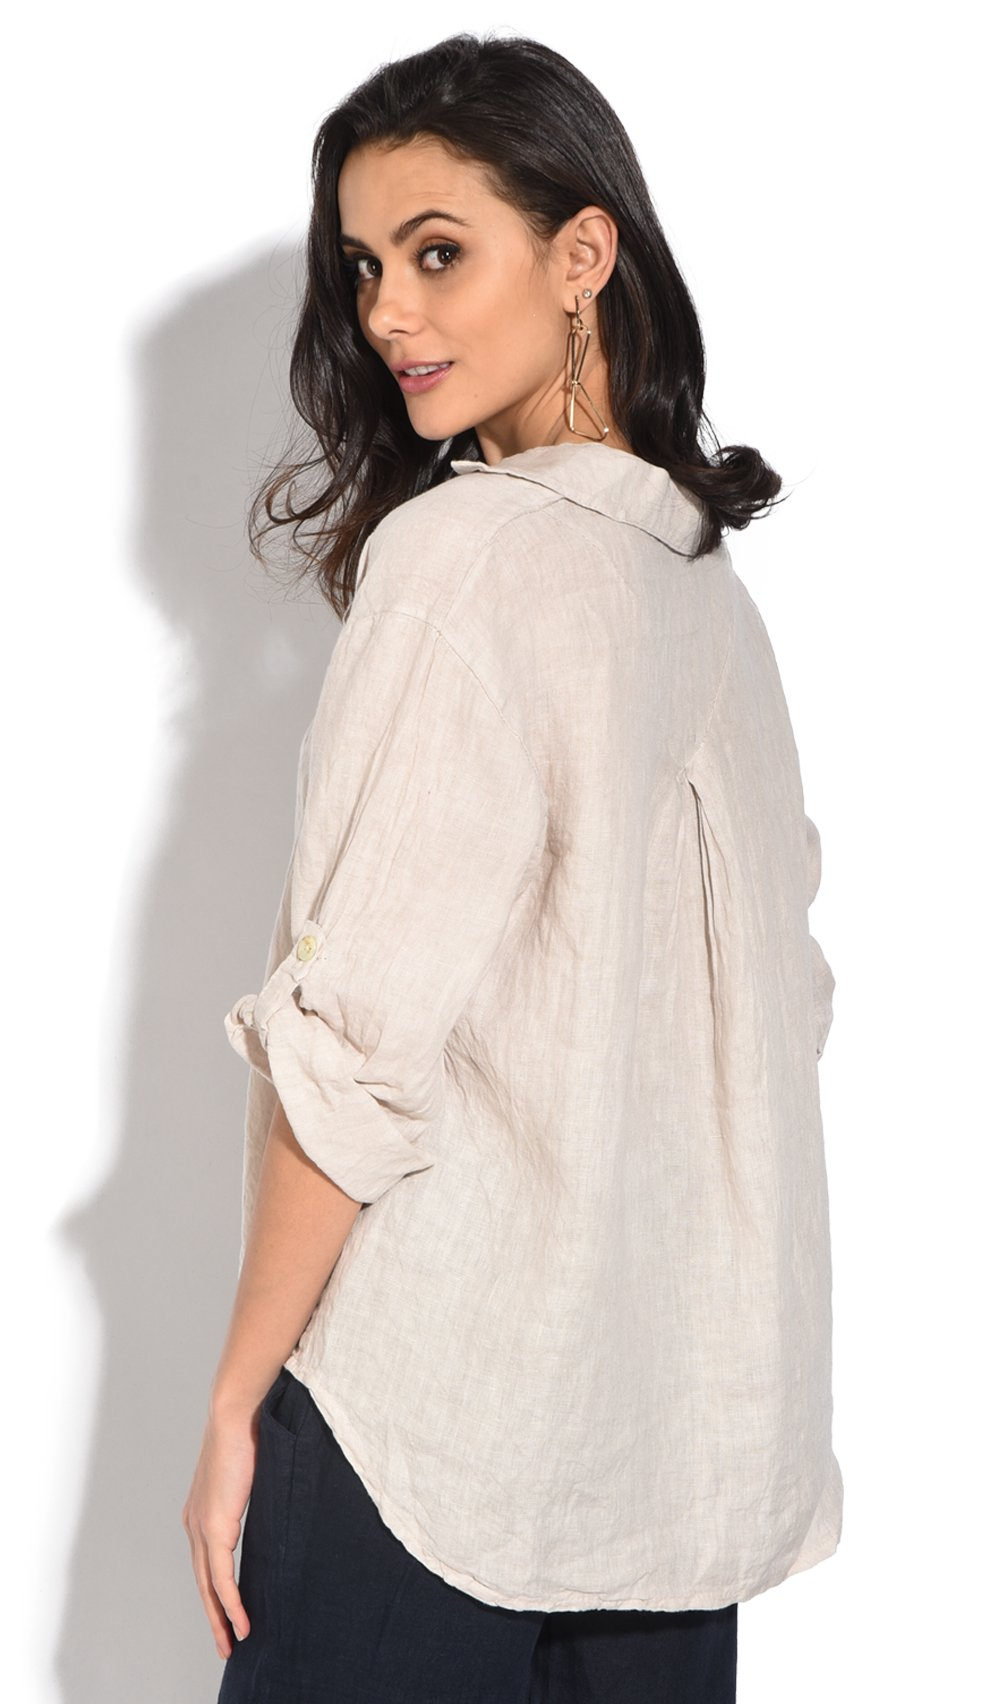 V-NECK TOP WITH LONG ATTACHABLE SLEEVES AND POCKETS